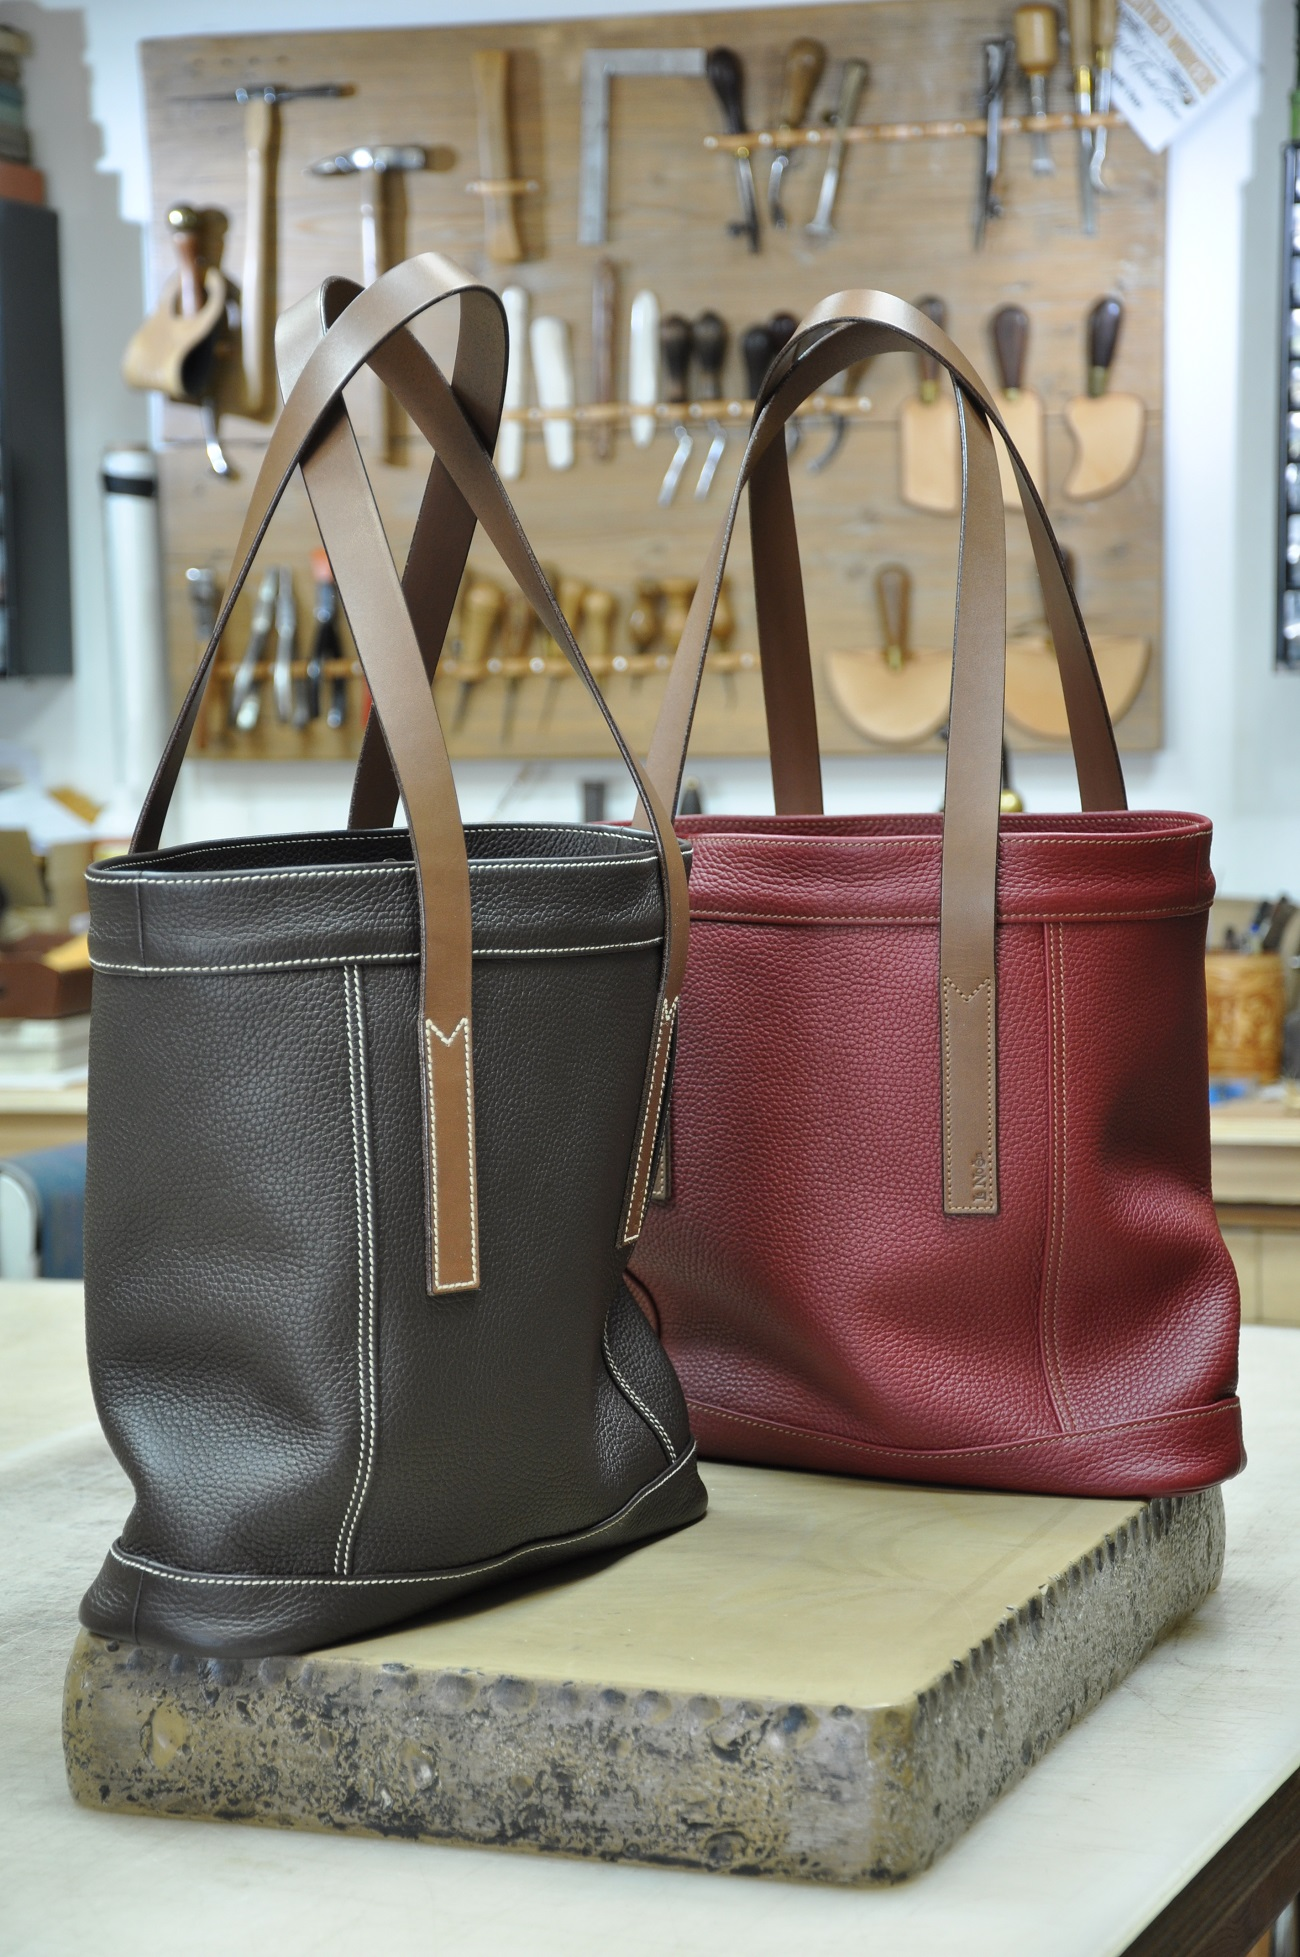 Bags for women custom-made for Christmas. You choice the leather and the kind of handles. Made in France by LE NOËN leather goods makers.